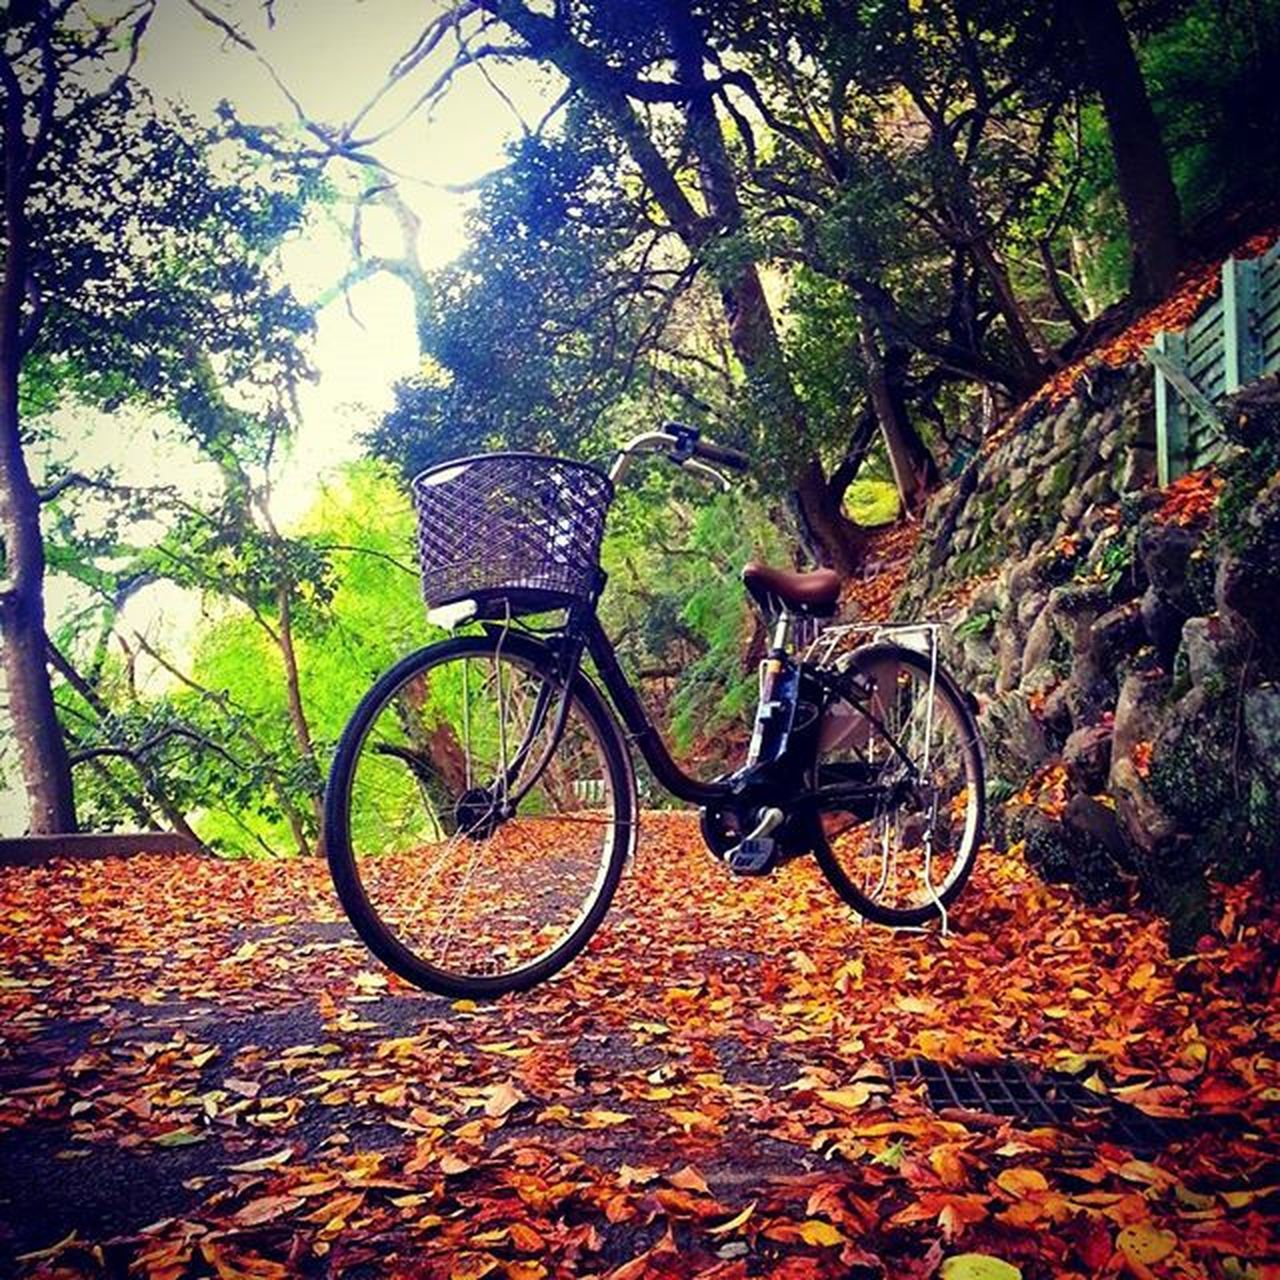 bicycle, leaf, autumn, tree, day, change, nature, outdoors, transportation, no people, land vehicle, beauty in nature